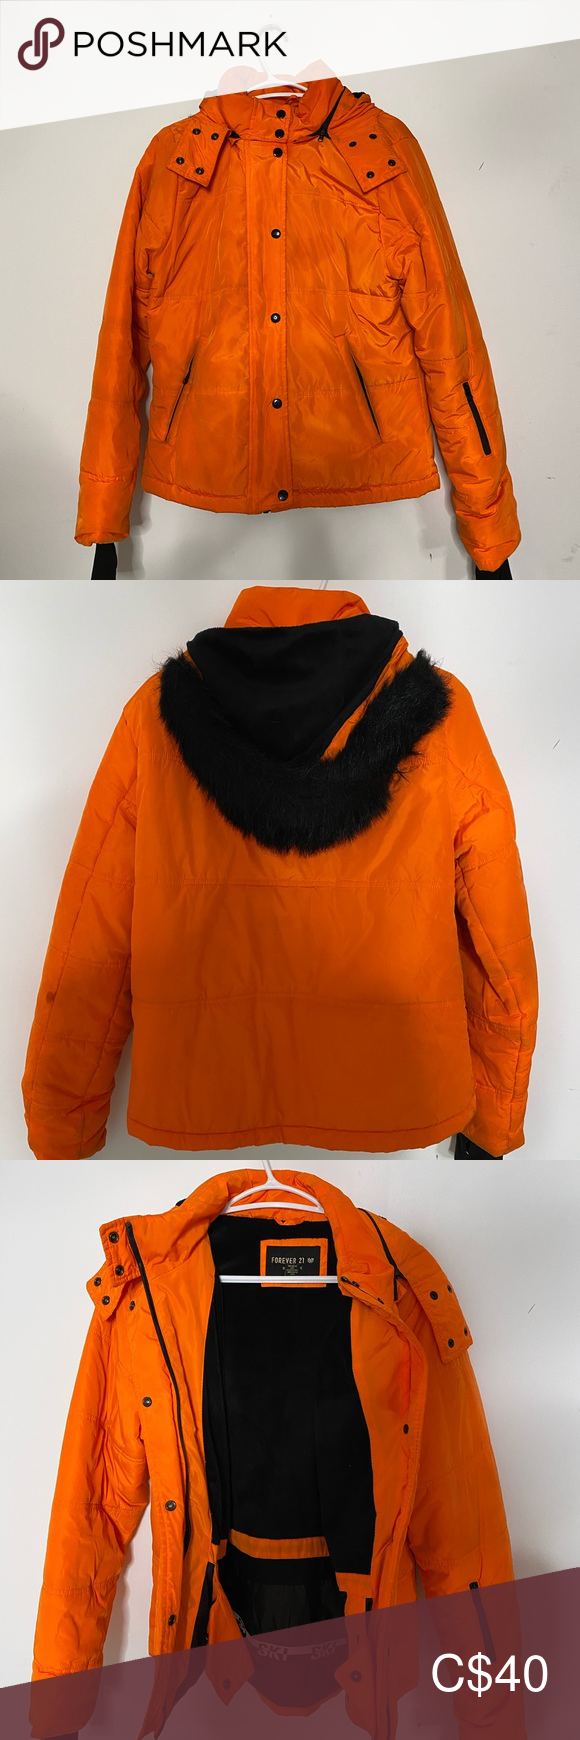 Neon Forever 21 Puffer Jacket Super Warm Forever 21 Neon Orange Puffer Jacket It S Honestly Served Me Well Even On Su Jackets Puffer Jackets Forever 21 Jacket [ 1740 x 580 Pixel ]